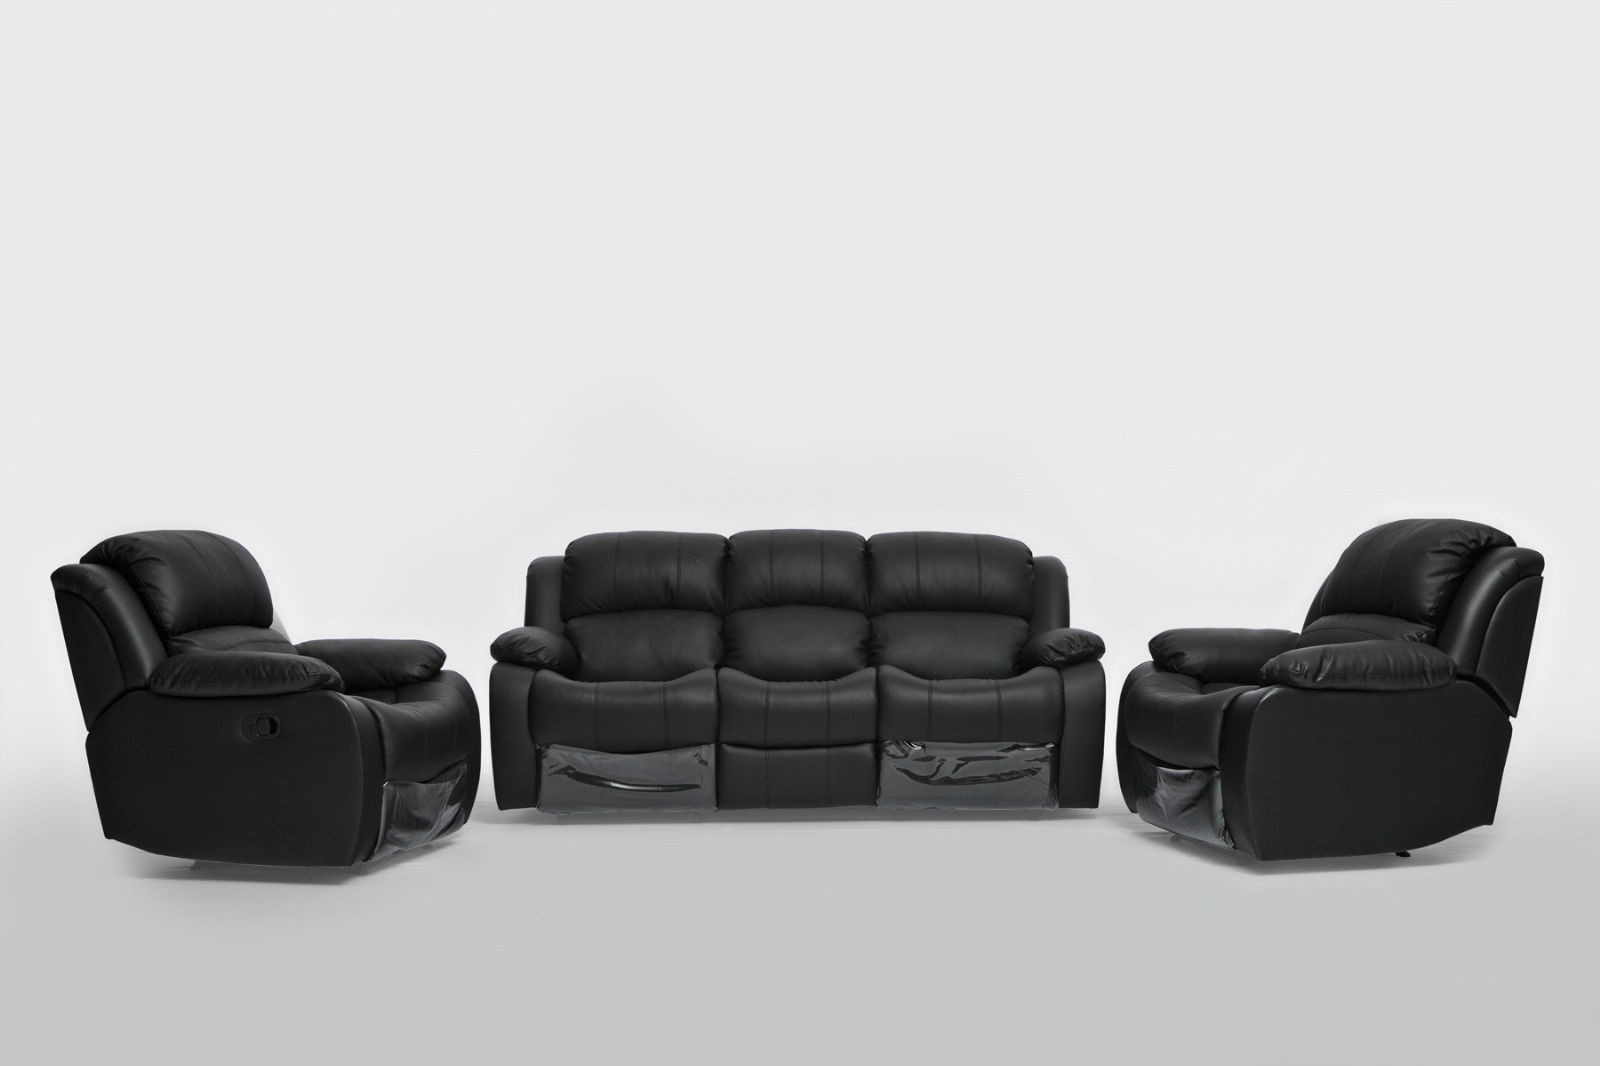 2 Seater Recliner Lounge Kacey 3 Seater Chair Recliner Couch Lounge Suite Sofa